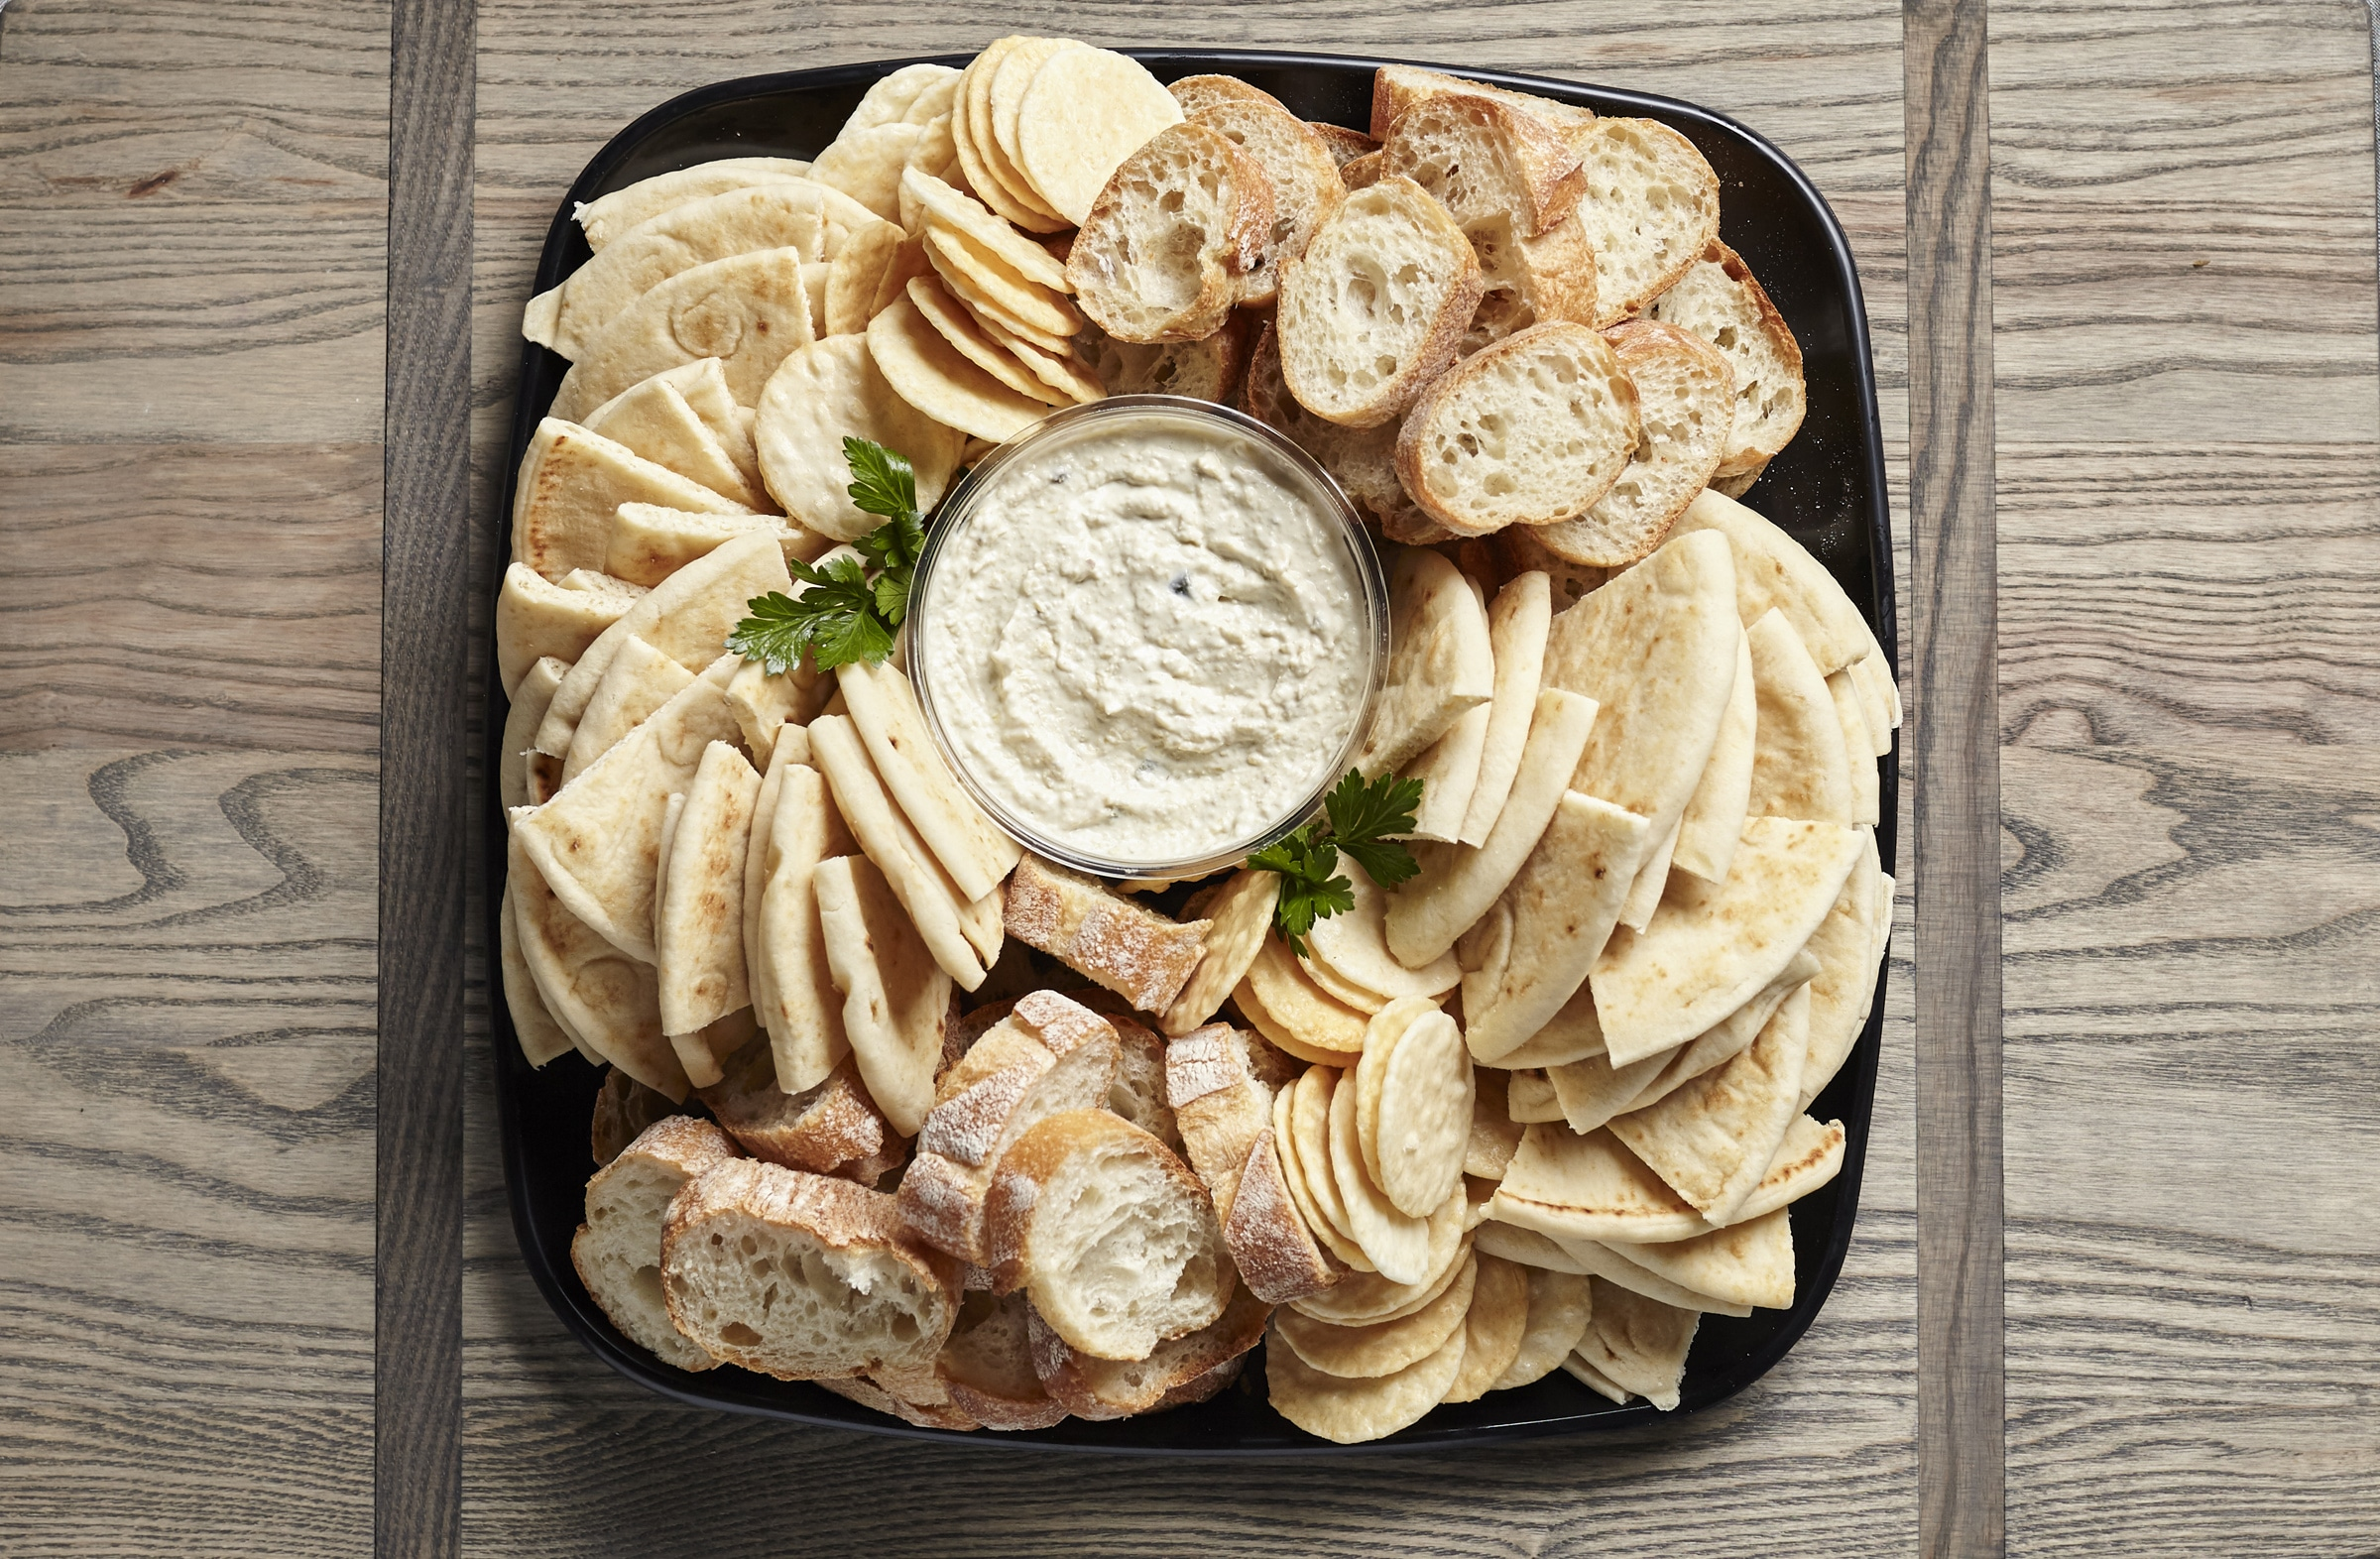 Artichoke Dip tray from Zupans catering